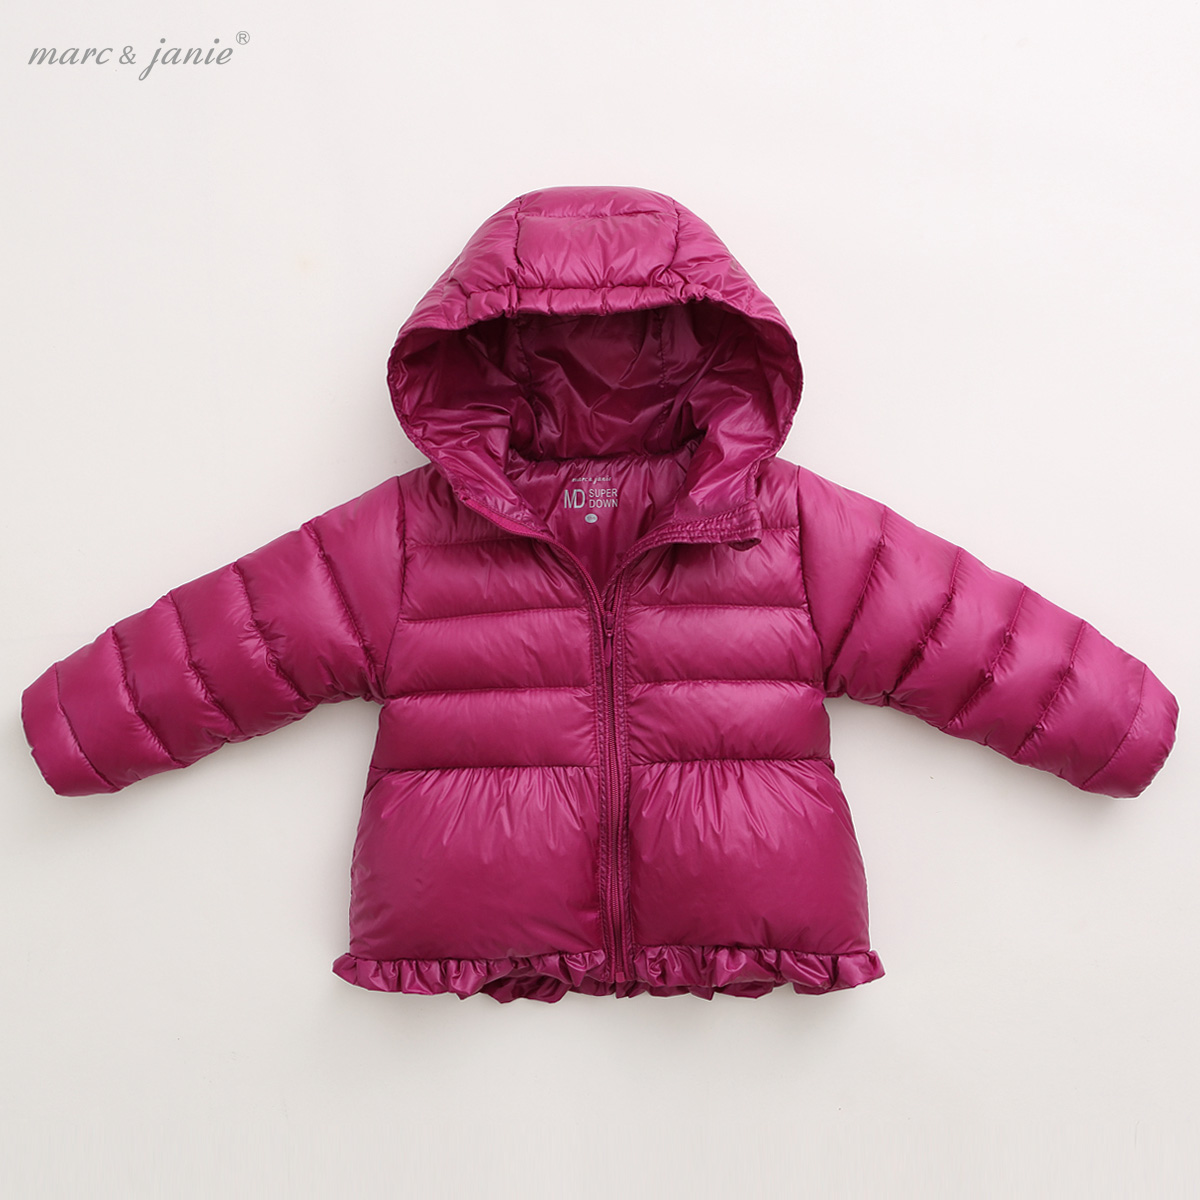 0-1-2 year old female baby baby winter jacket jacket light infant snowsuit baby-snowsuit children childrens winter jackets